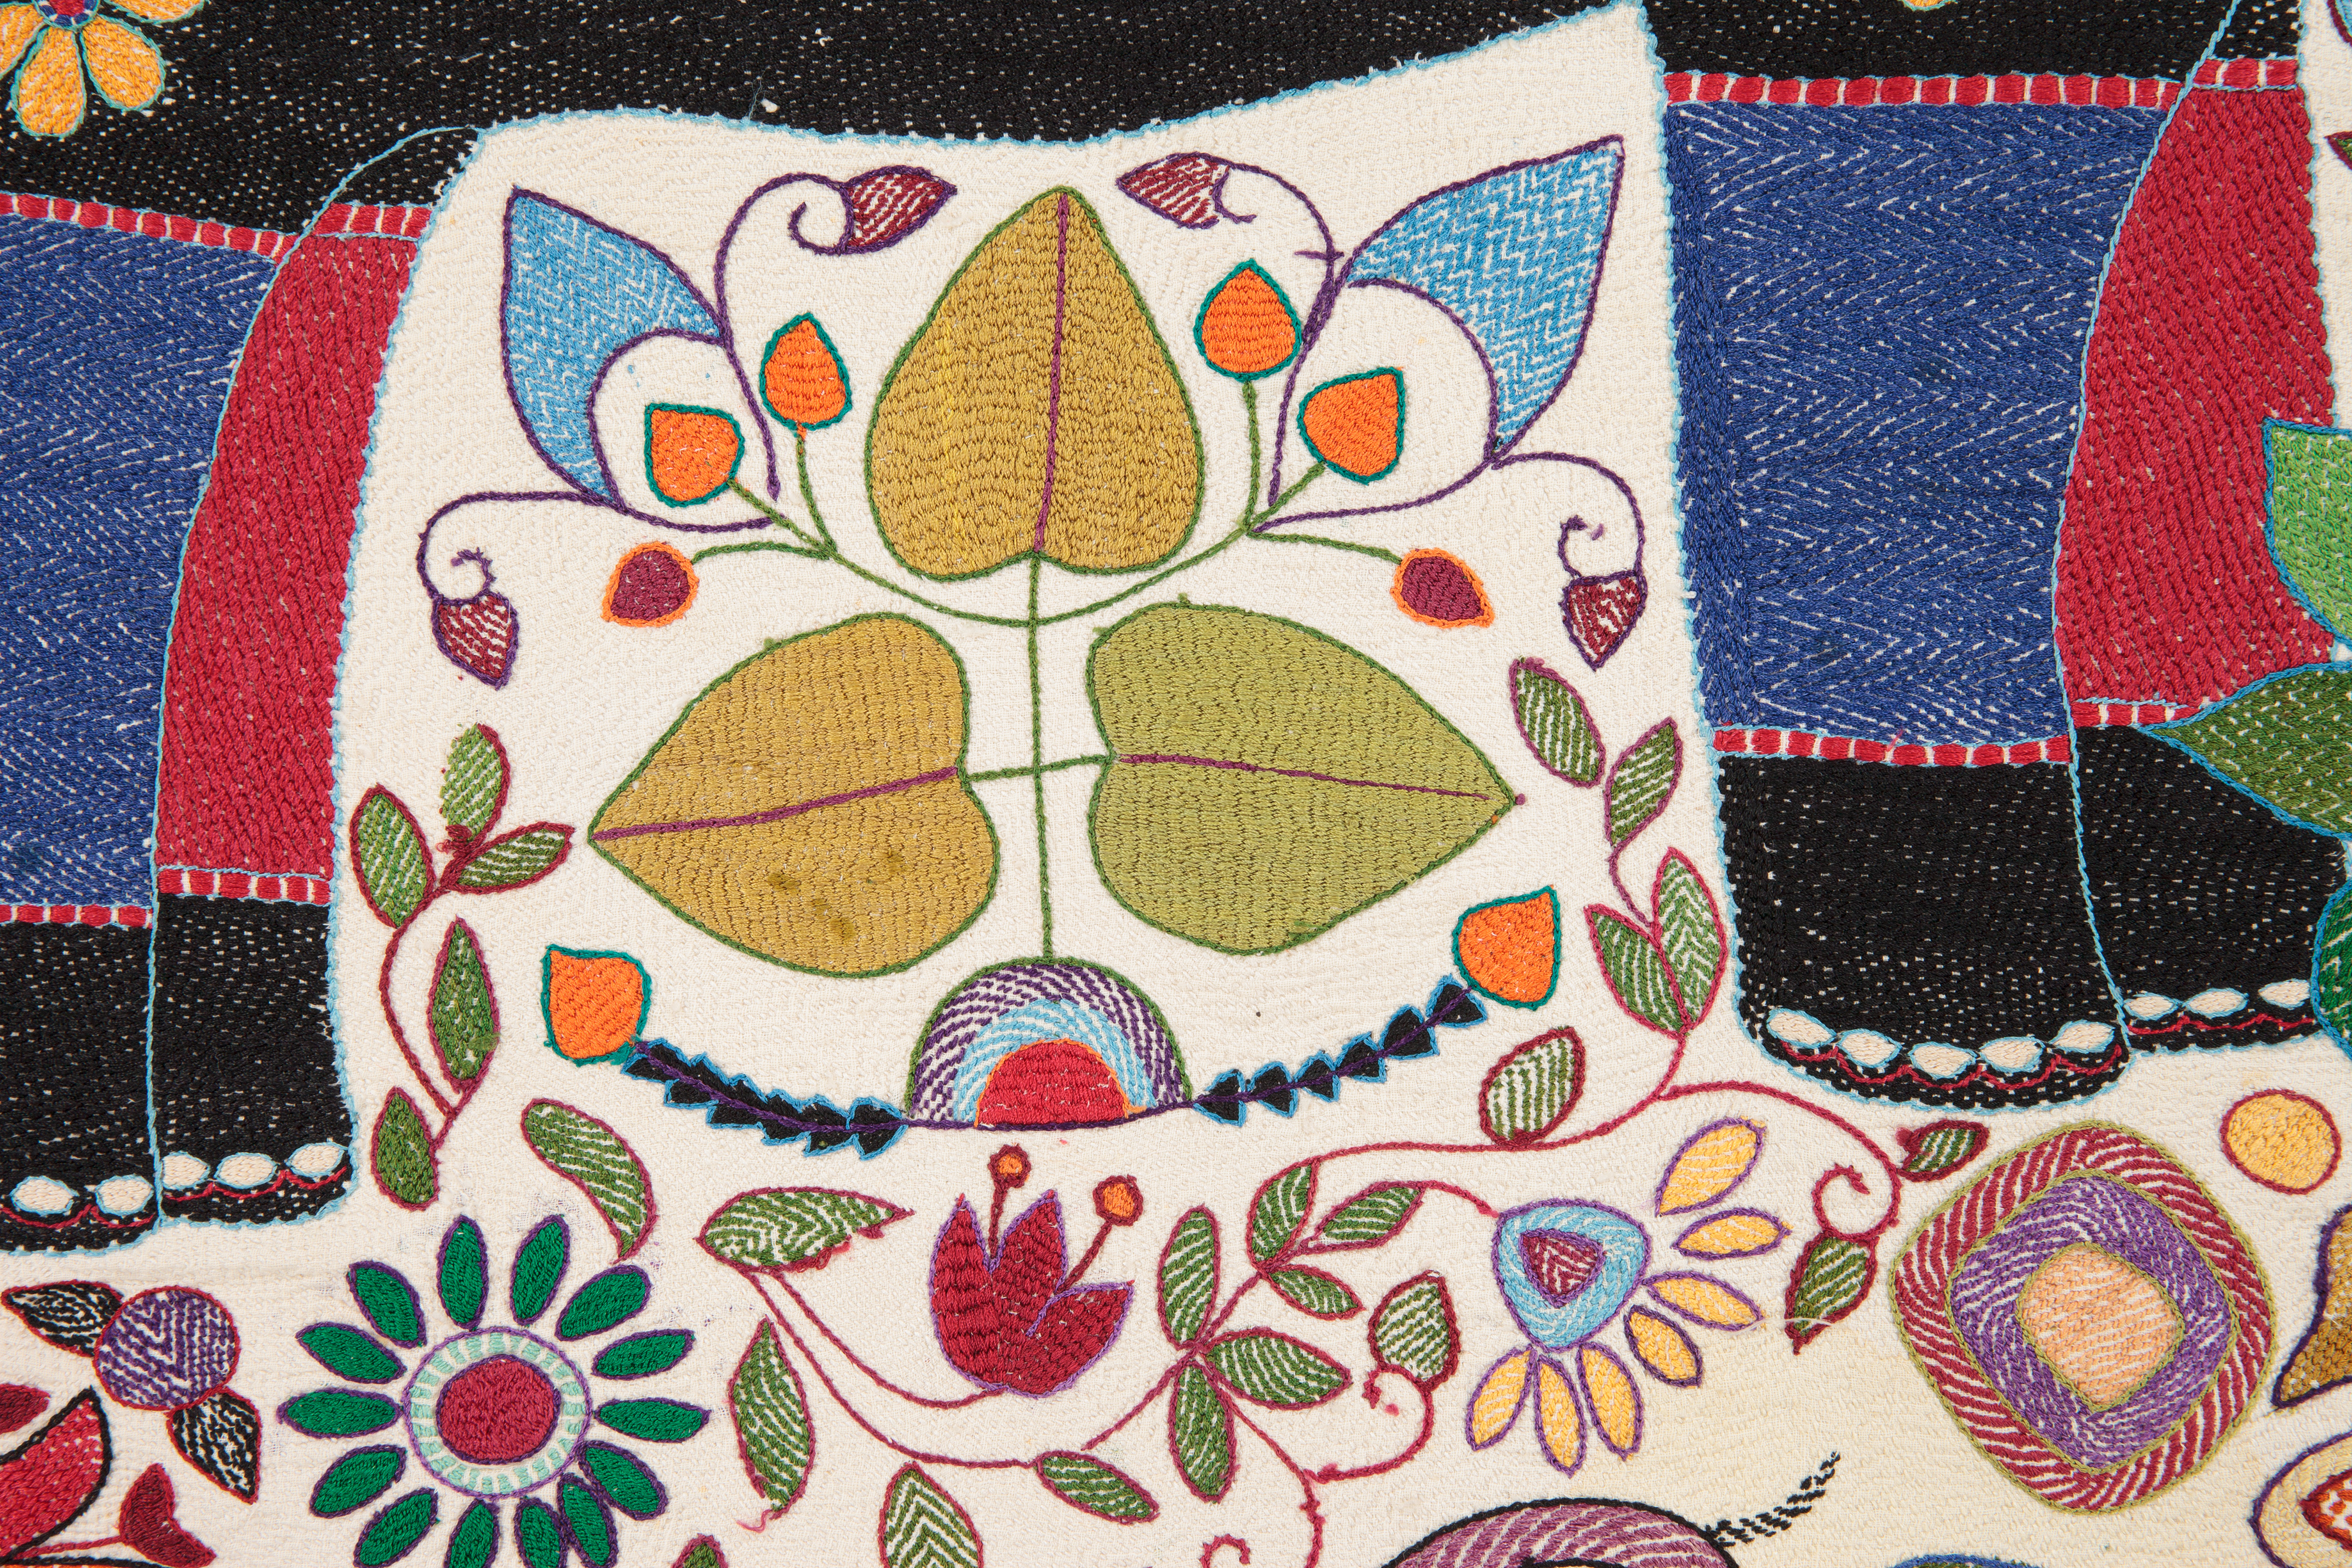 close up detail of embroidery featuring multi-coloured floral motifs using a combination of running, chain, herringbone, satin and cross stitch.